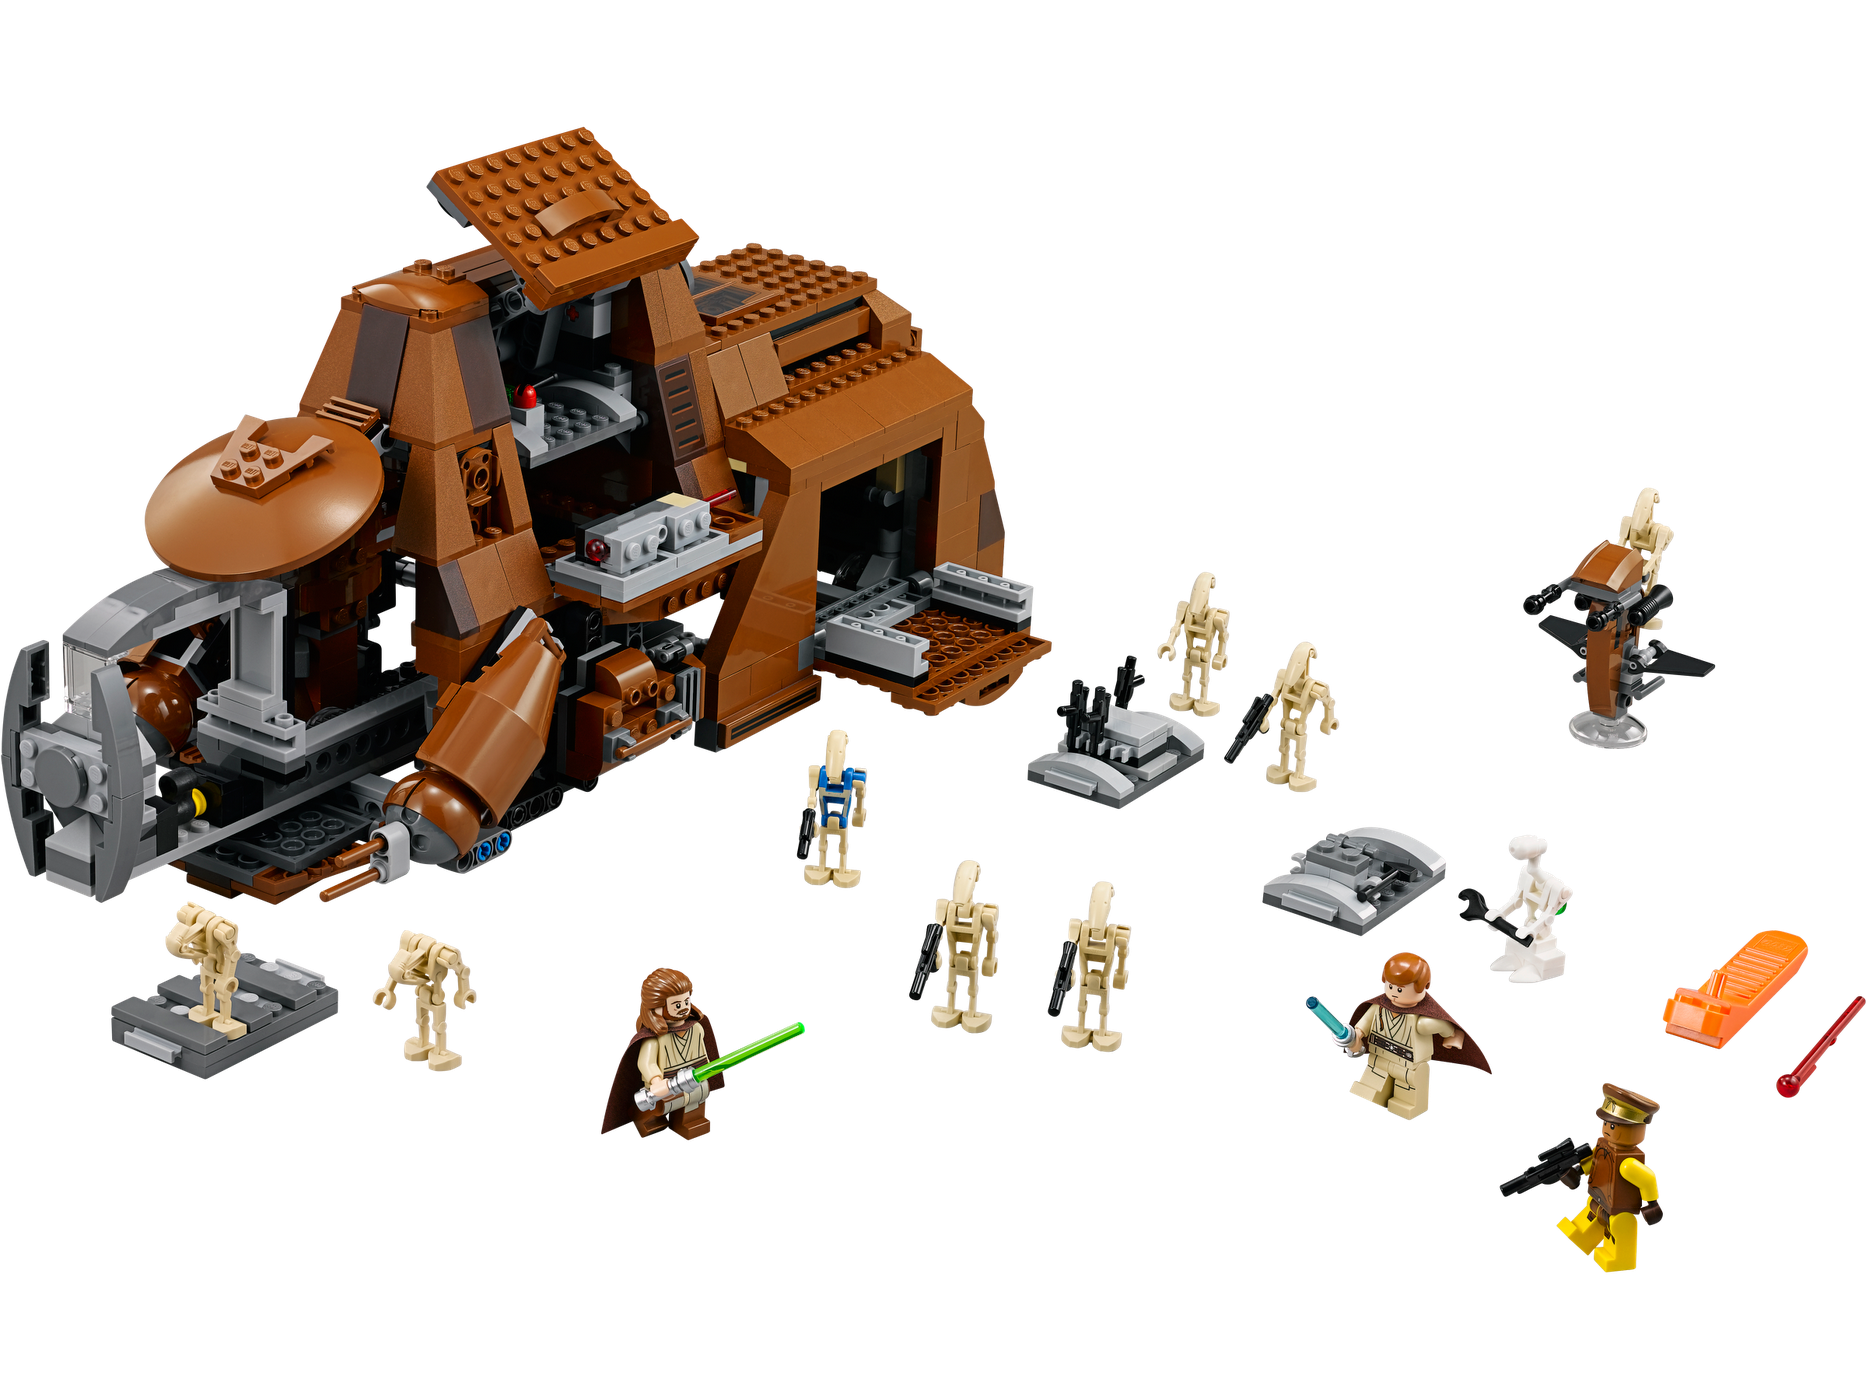 Kategoriastar Wars Legopedia Fandom Powered By Wikia